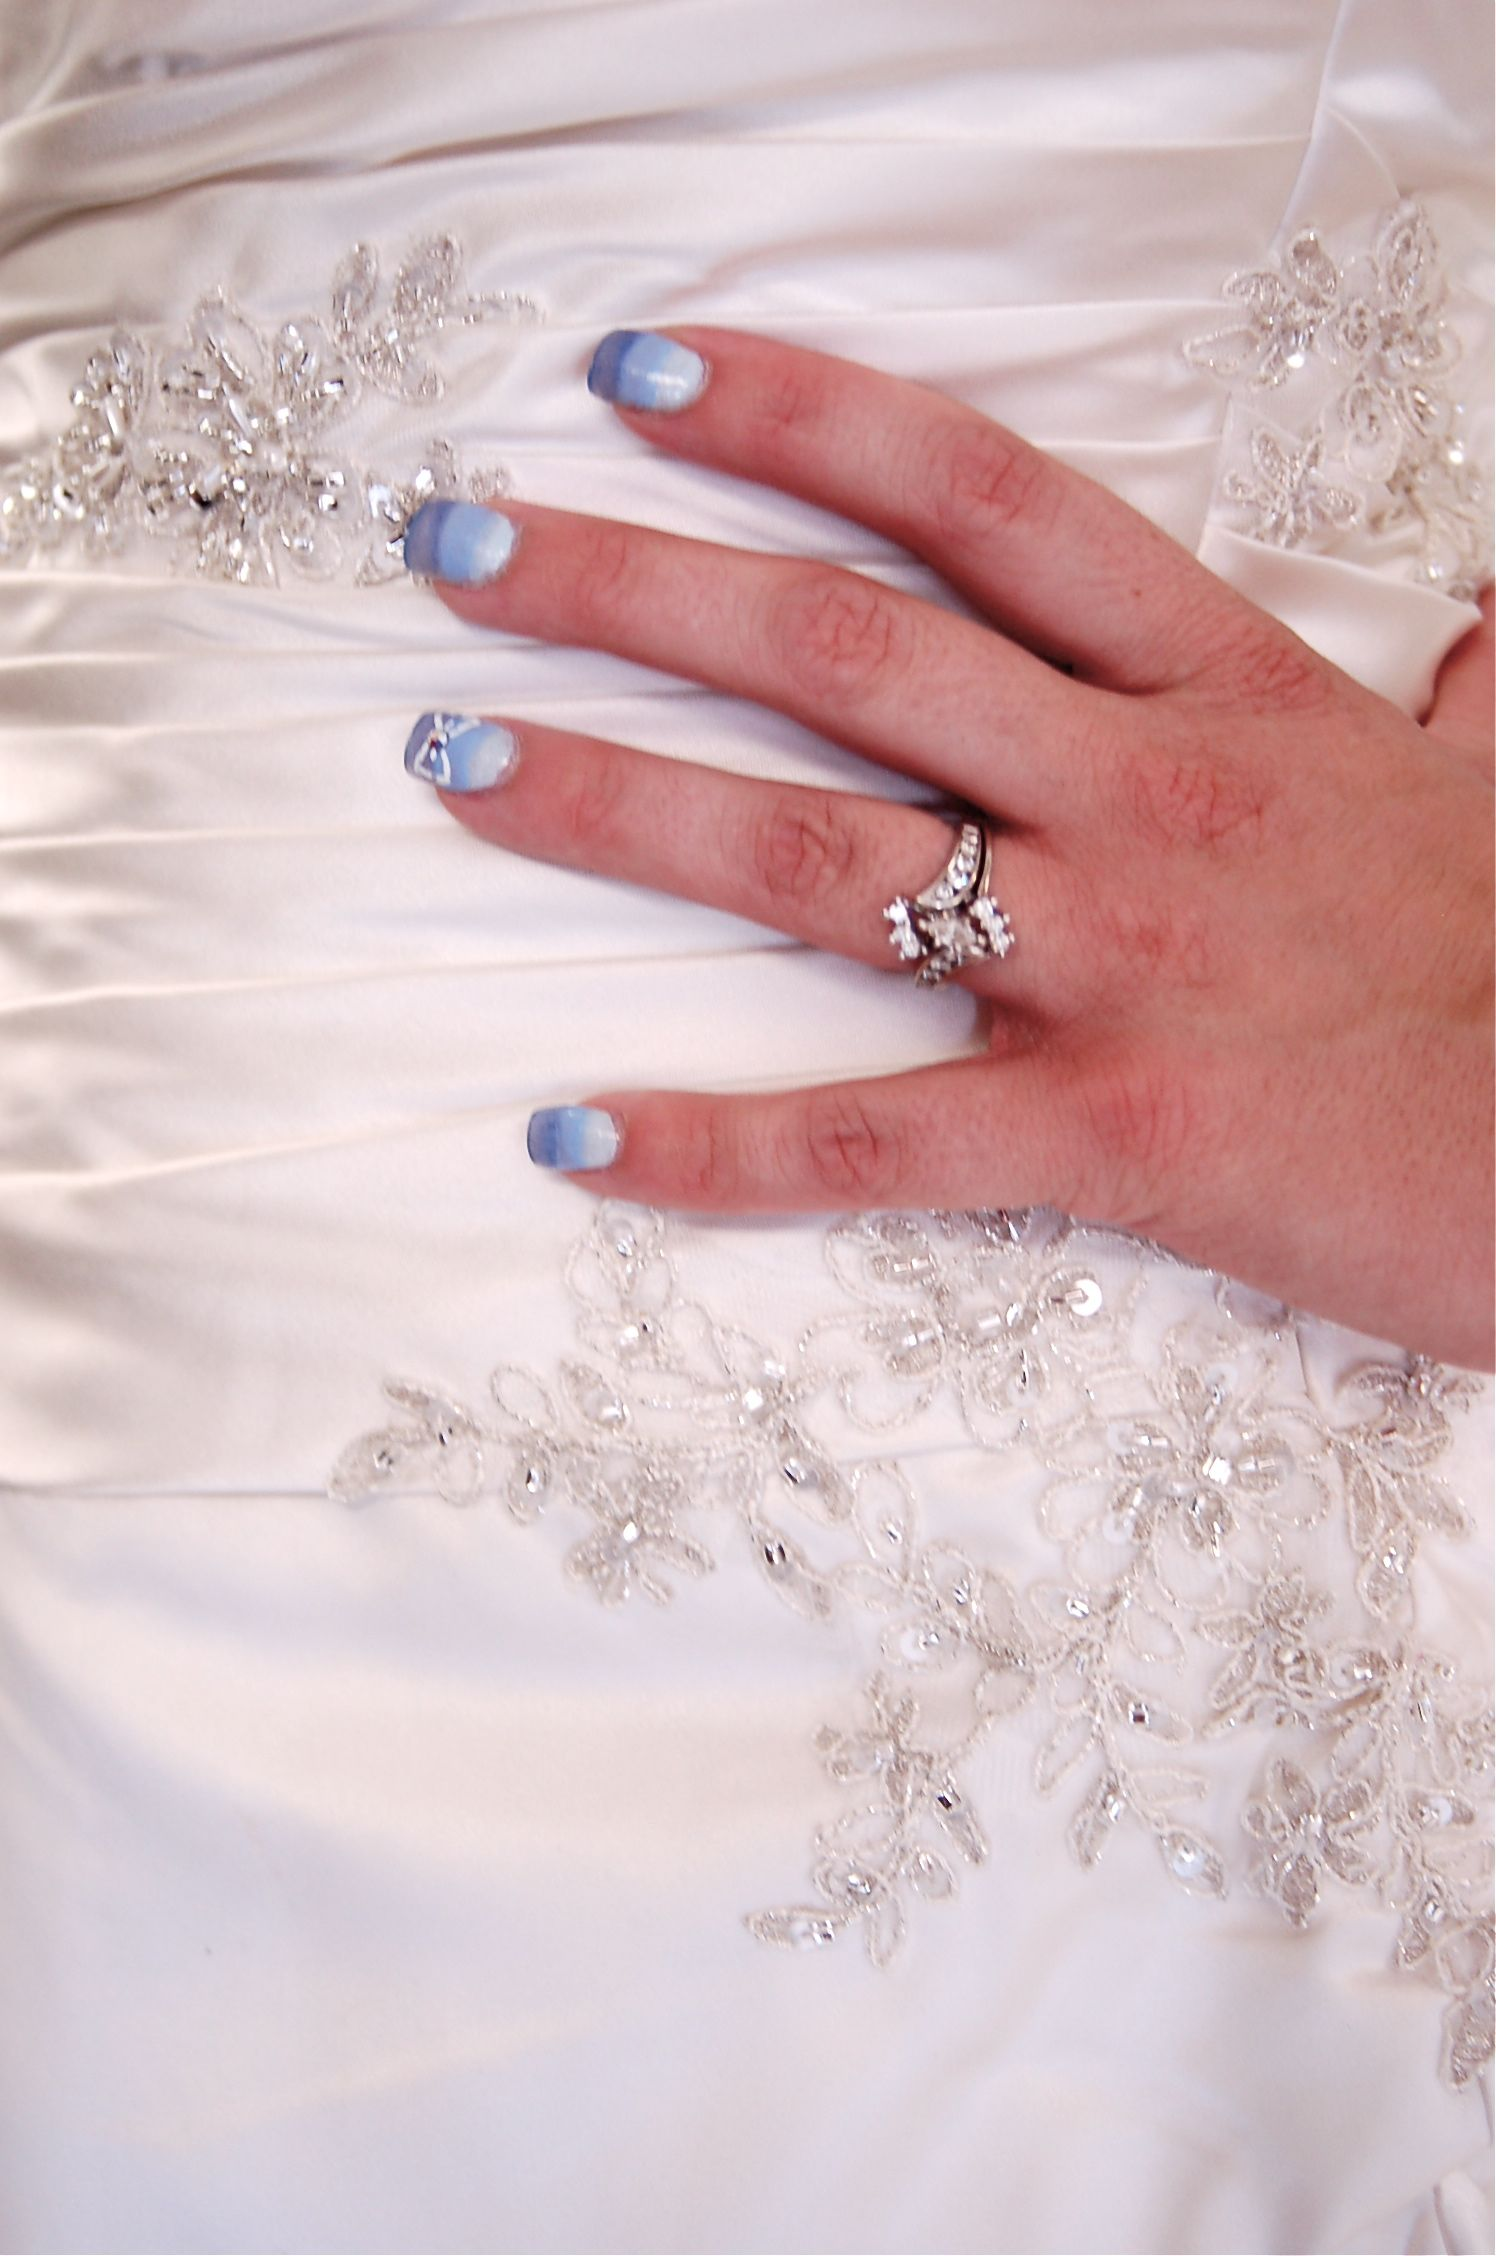 #wedding #nails #ombre #blue #somethingblue #bow # ...